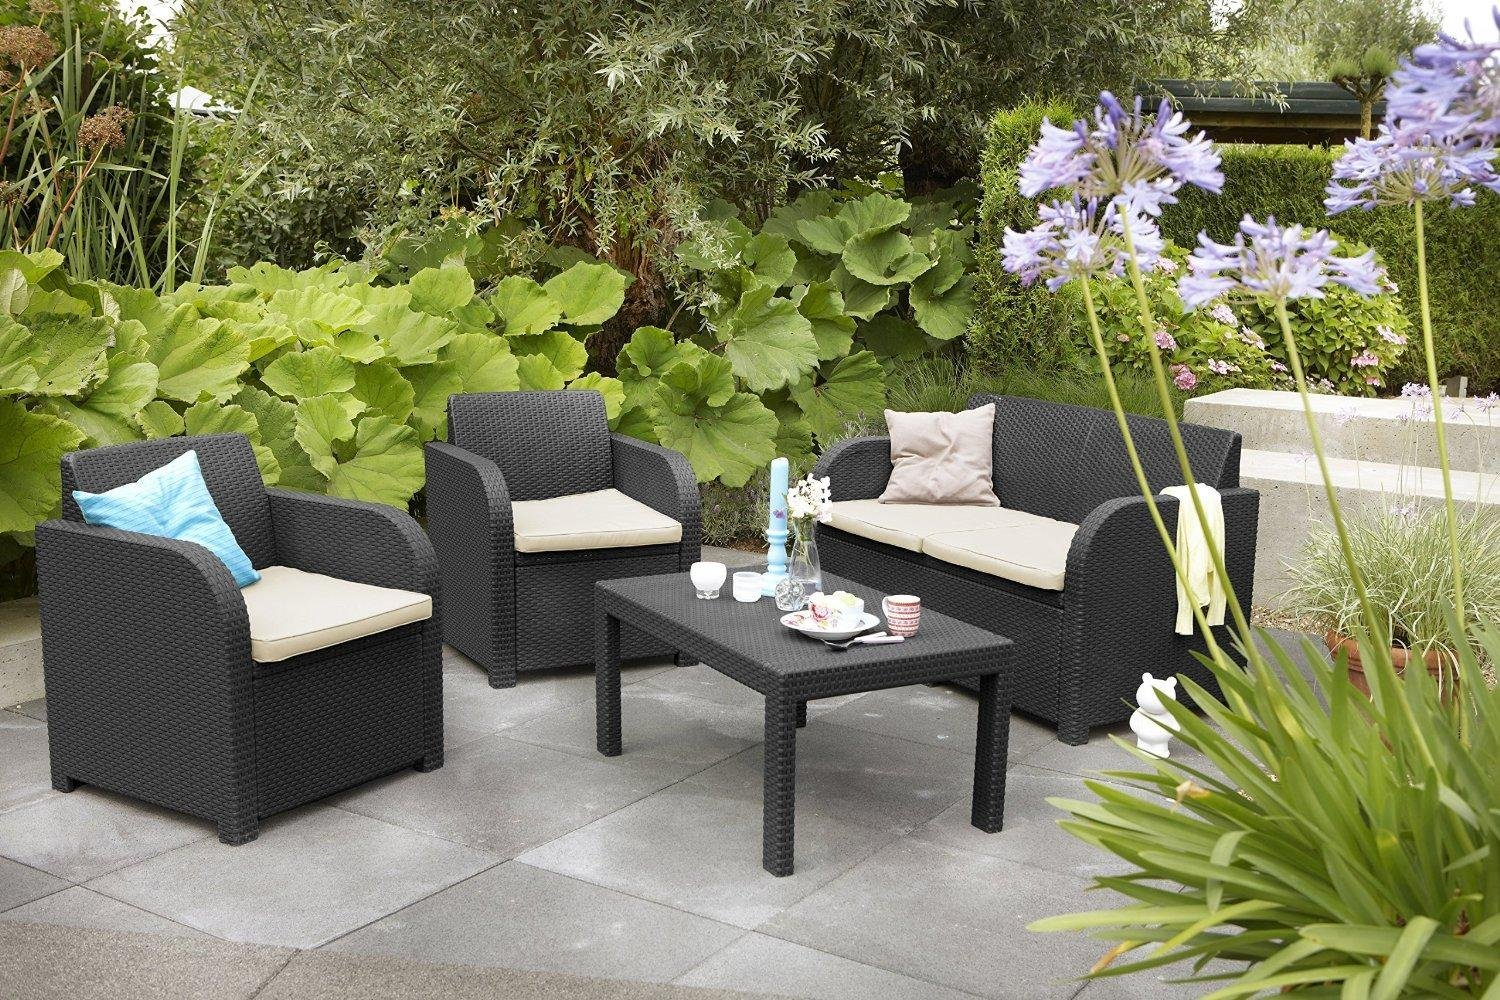 Keter Allibert Carolina Outdoor 4 Seater Rattan Lounge